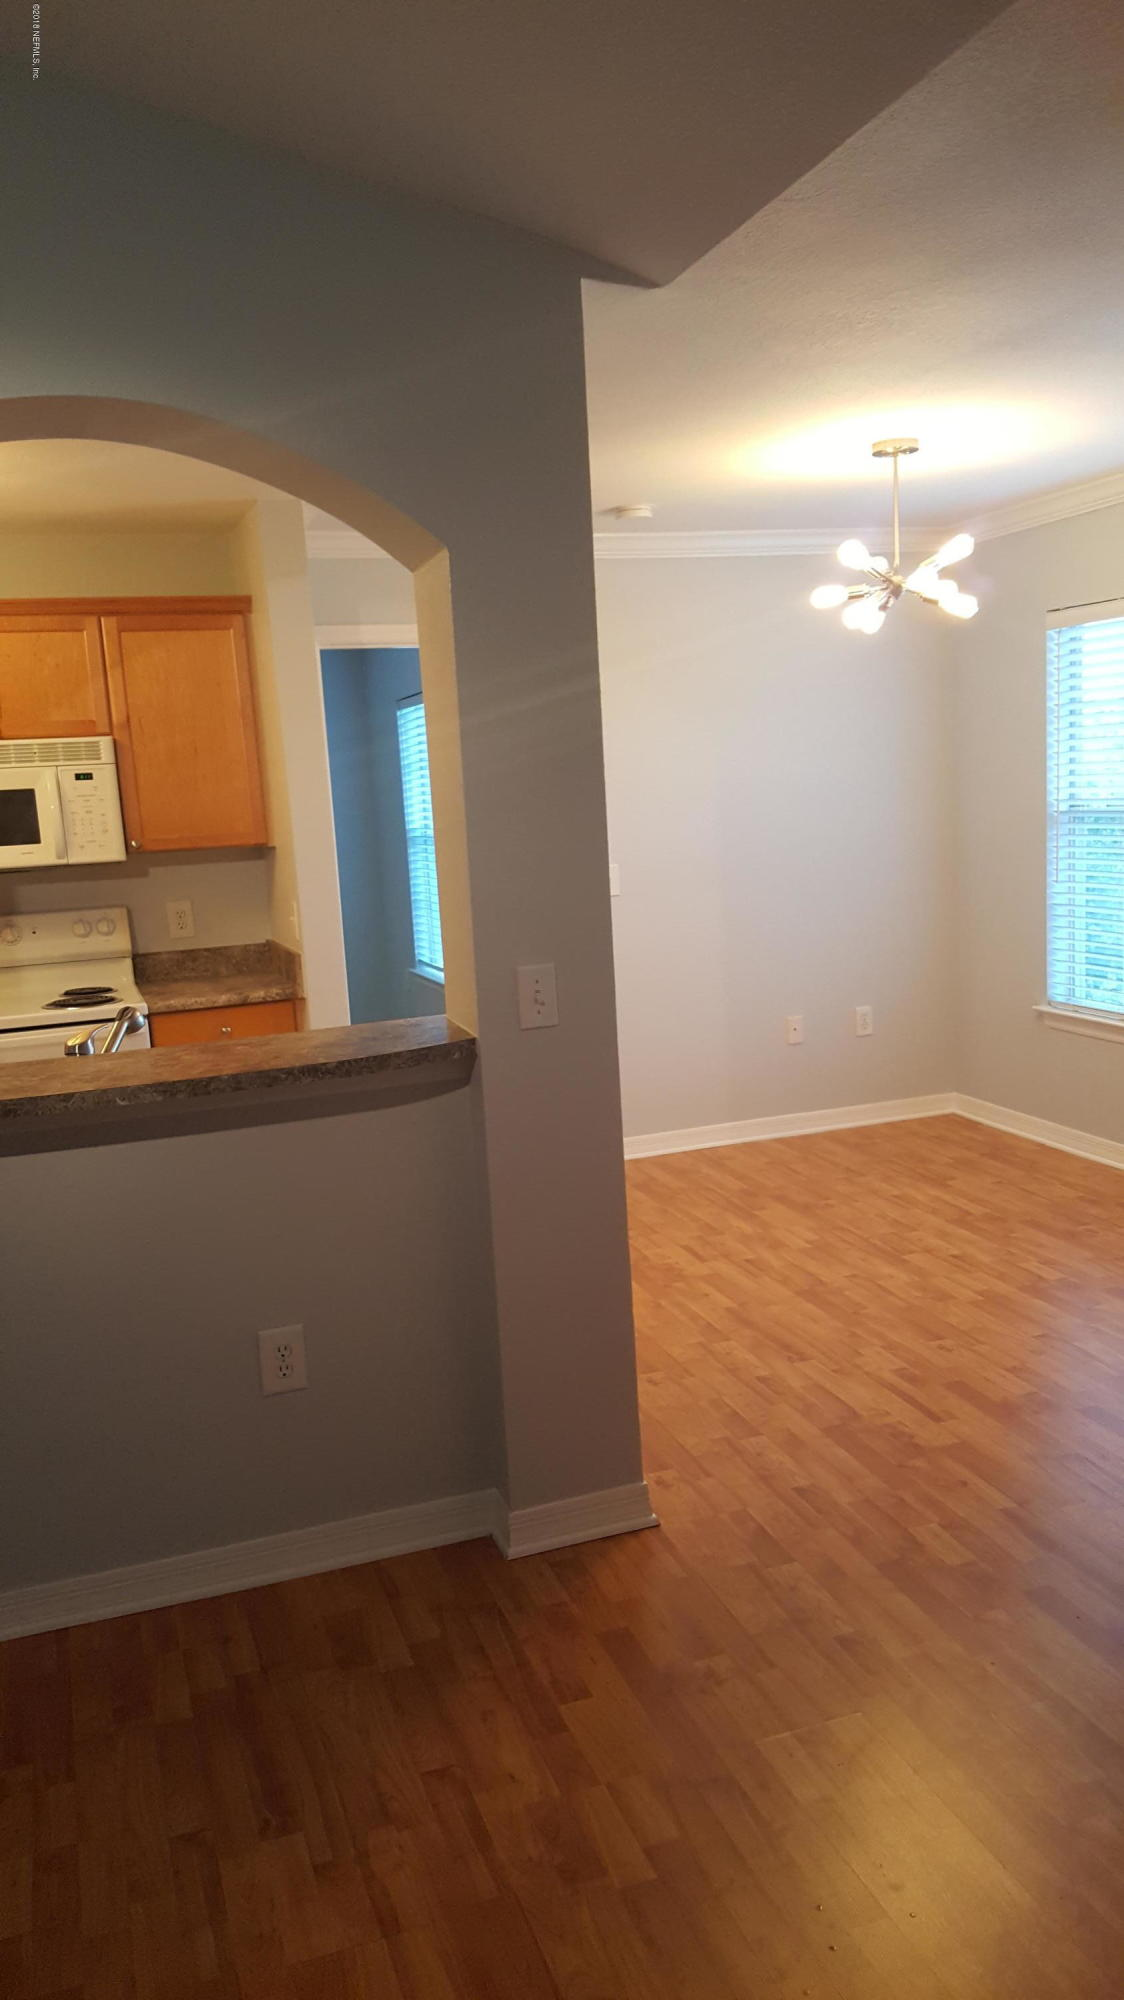 10961 BURNT MILL, JACKSONVILLE, FLORIDA 32256, 1 Bedroom Bedrooms, ,1 BathroomBathrooms,Residential - condos/townhomes,For sale,BURNT MILL,959707